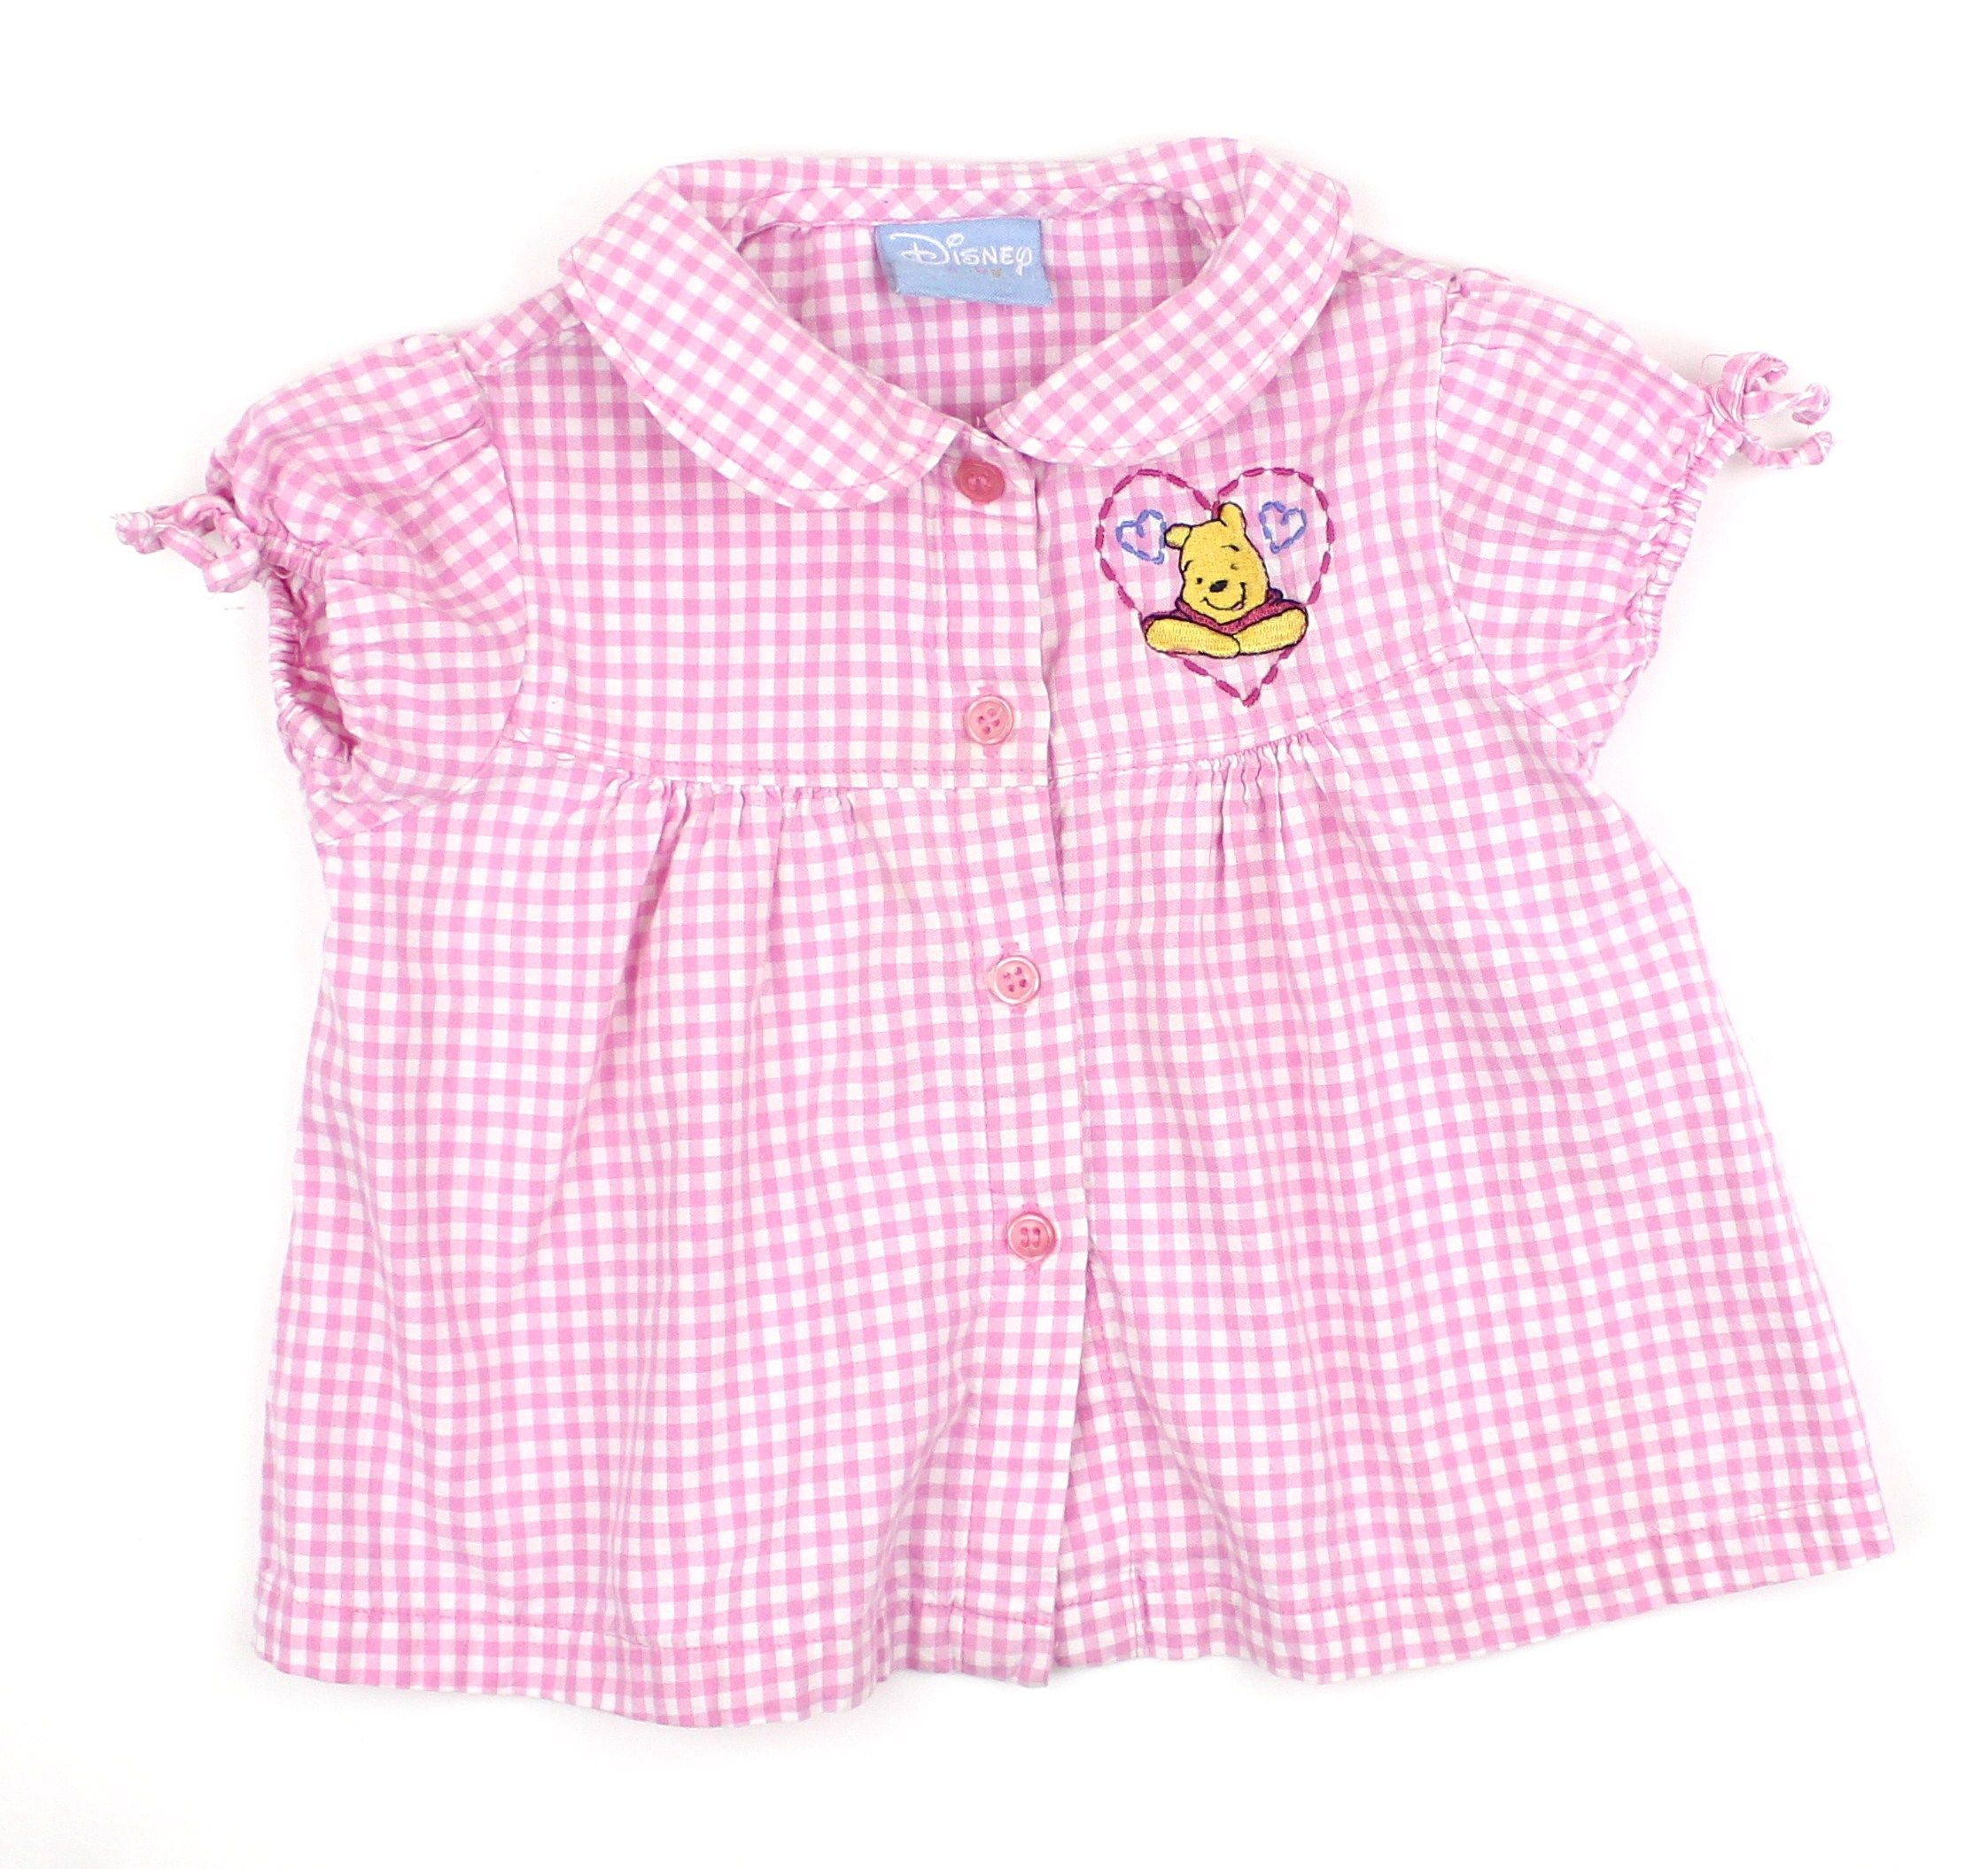 Pin On Disney Baby Clothes